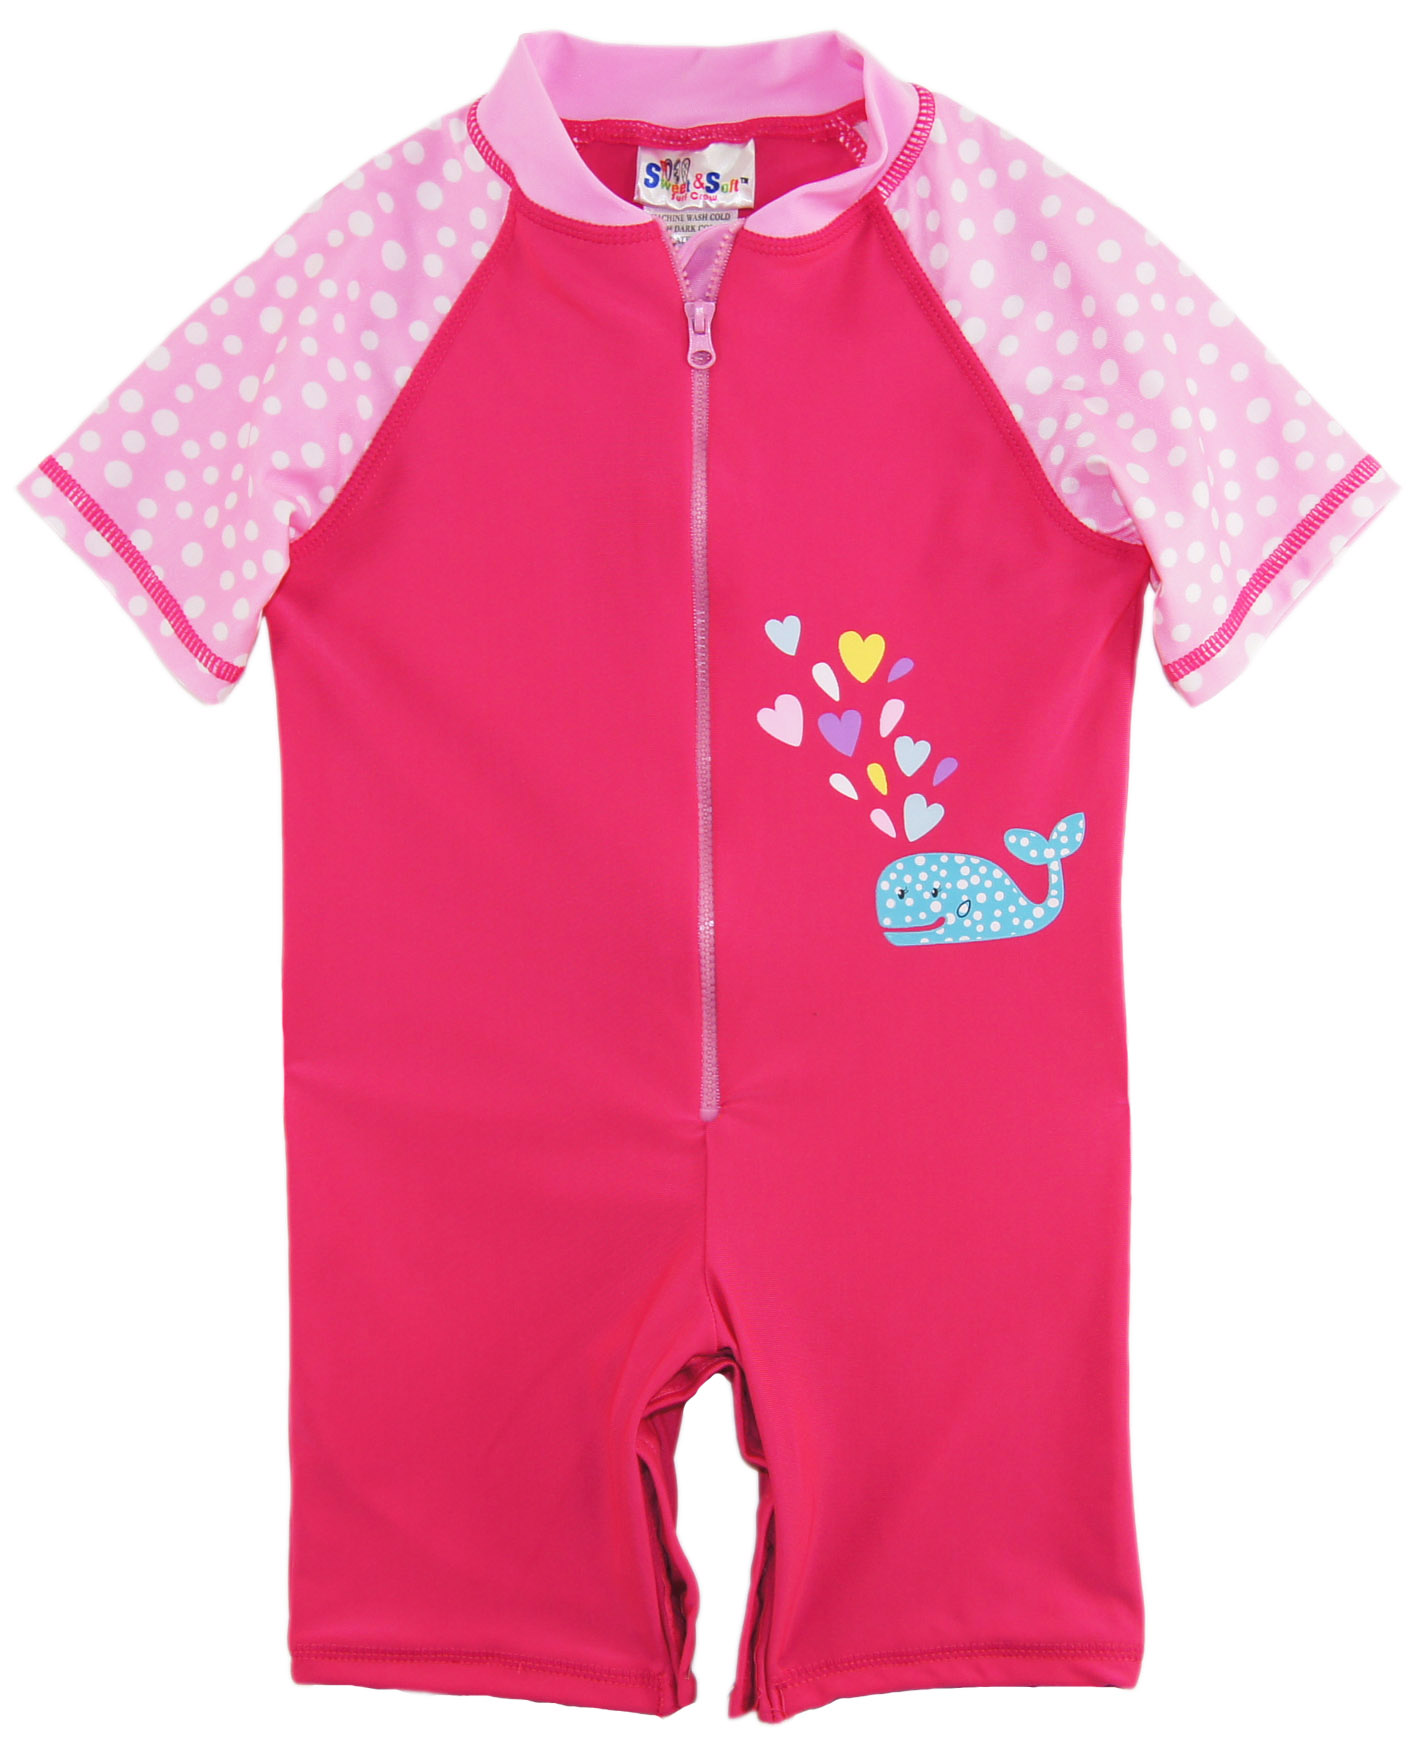 Sweet Soft Baby Girls Cute Whale With Polka Dots 1 Piece